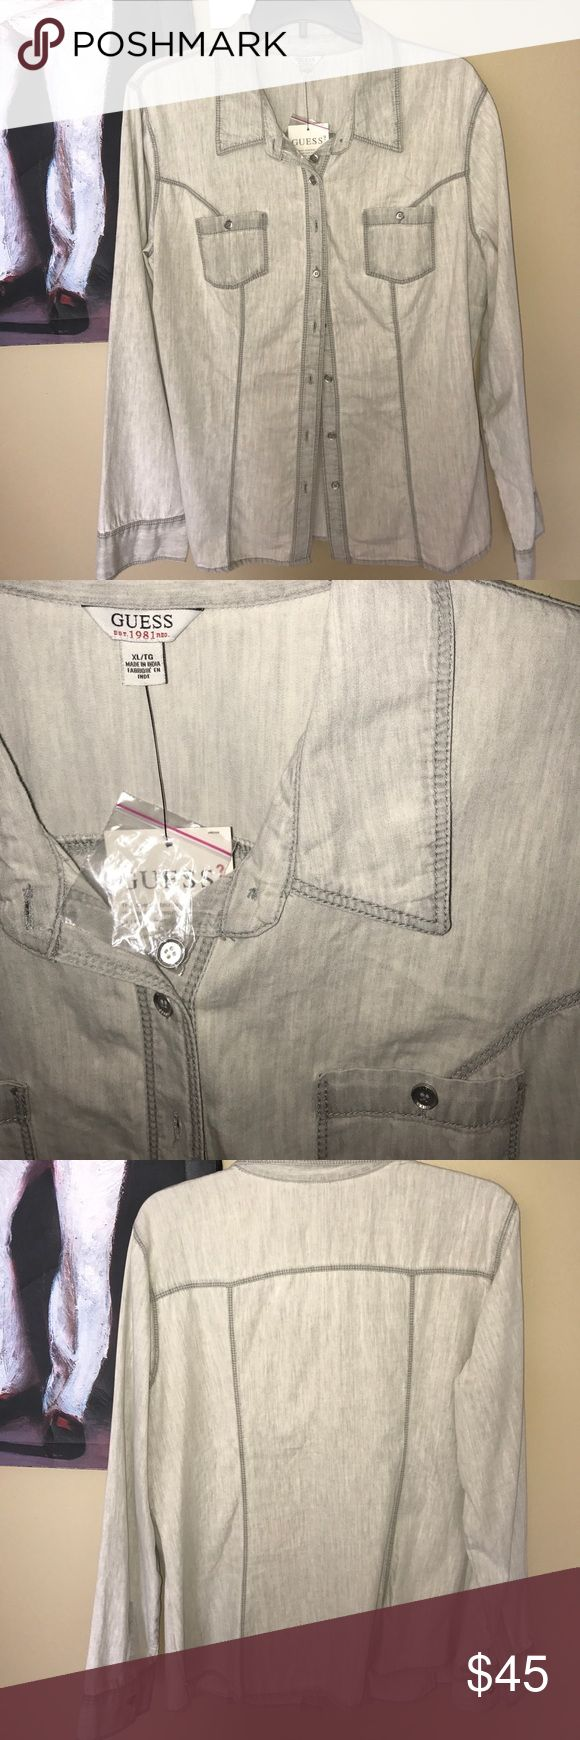 Guess Ash Grey Shirt New. Stylish light grey shirt. Open to offers Guess Tops Button Down Shirts